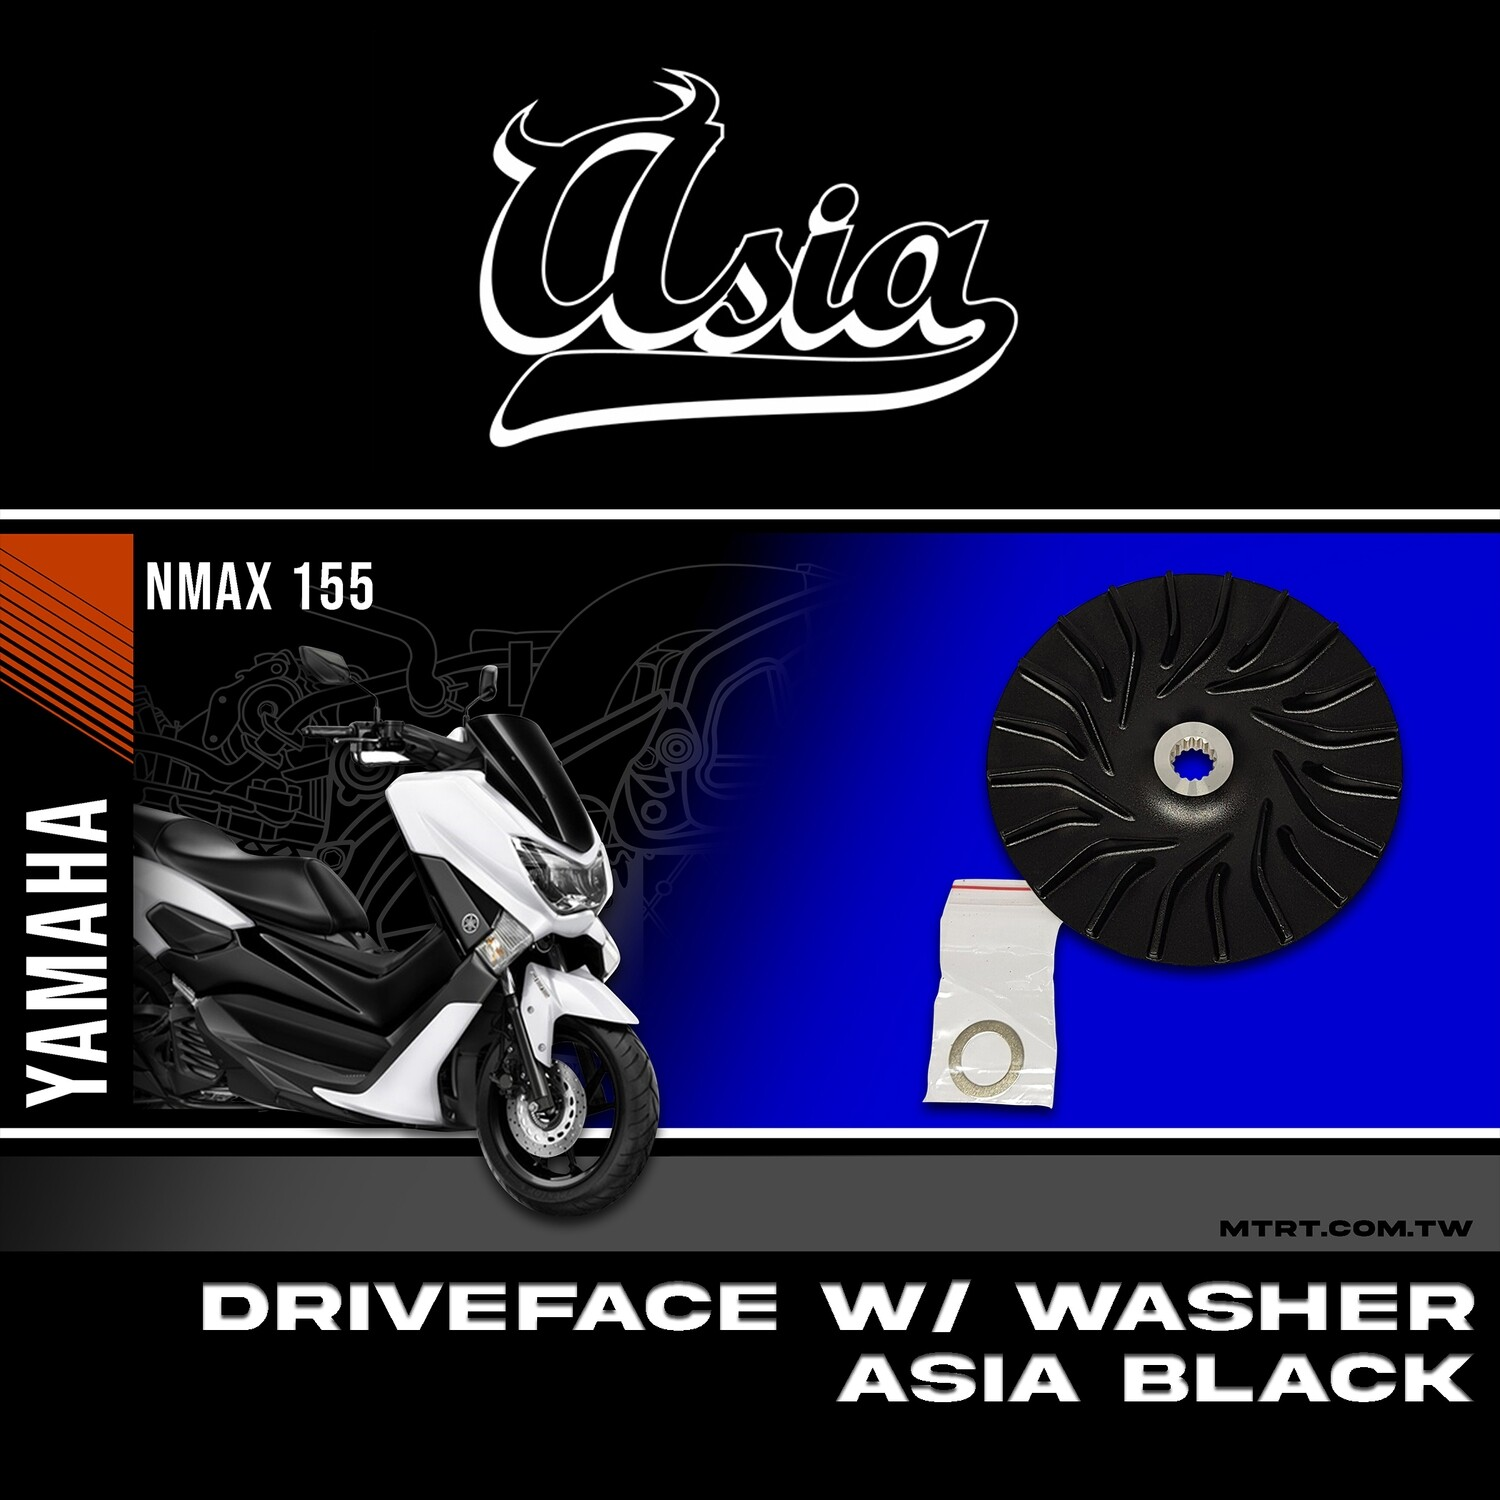 DRIVE FACE WITH WASHER NMAXX155 ASIA BLACK